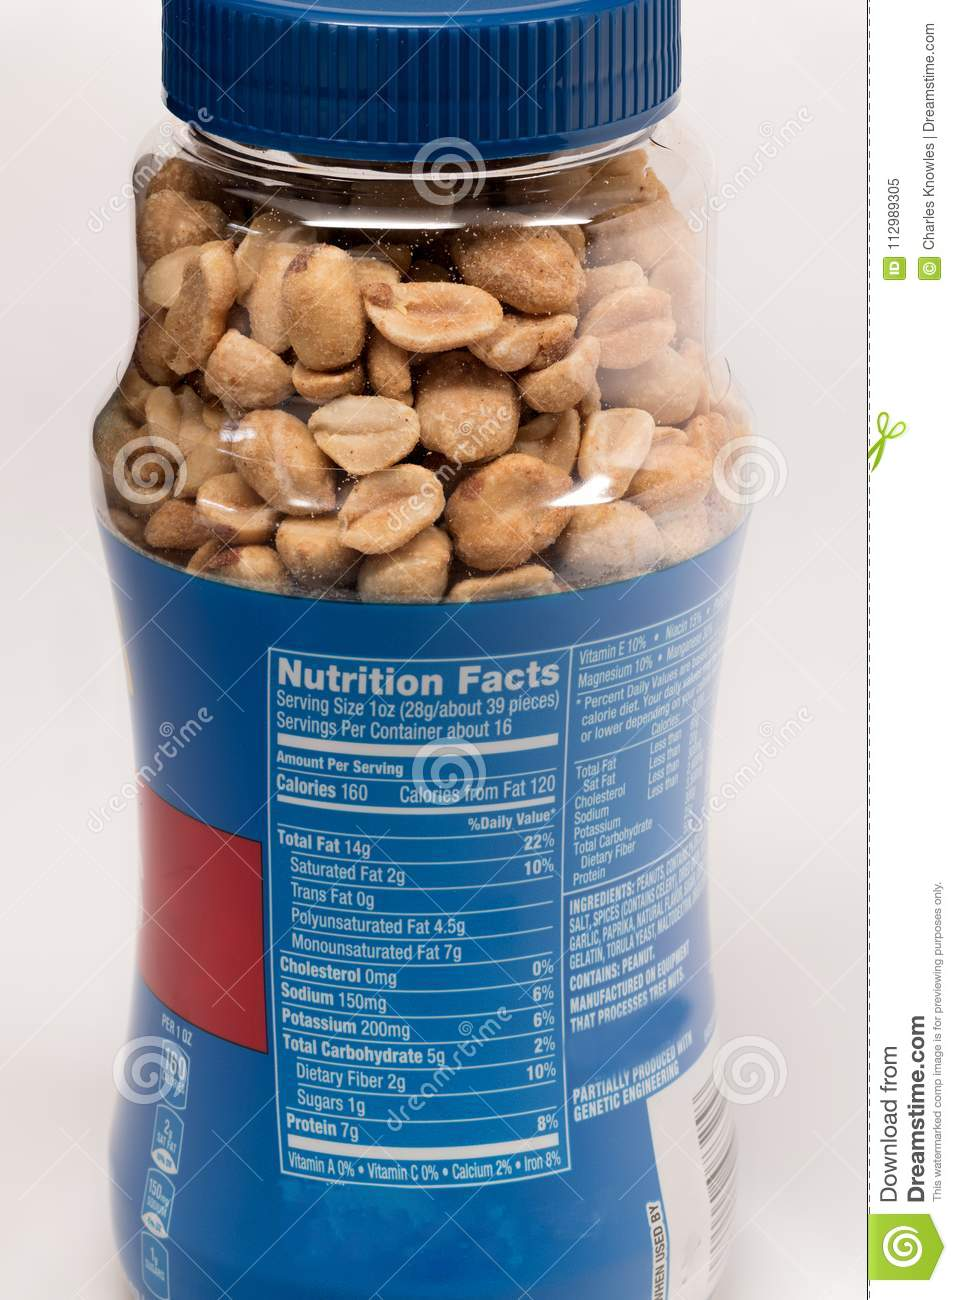 Jar of peanuts with the nutritional facts label showing